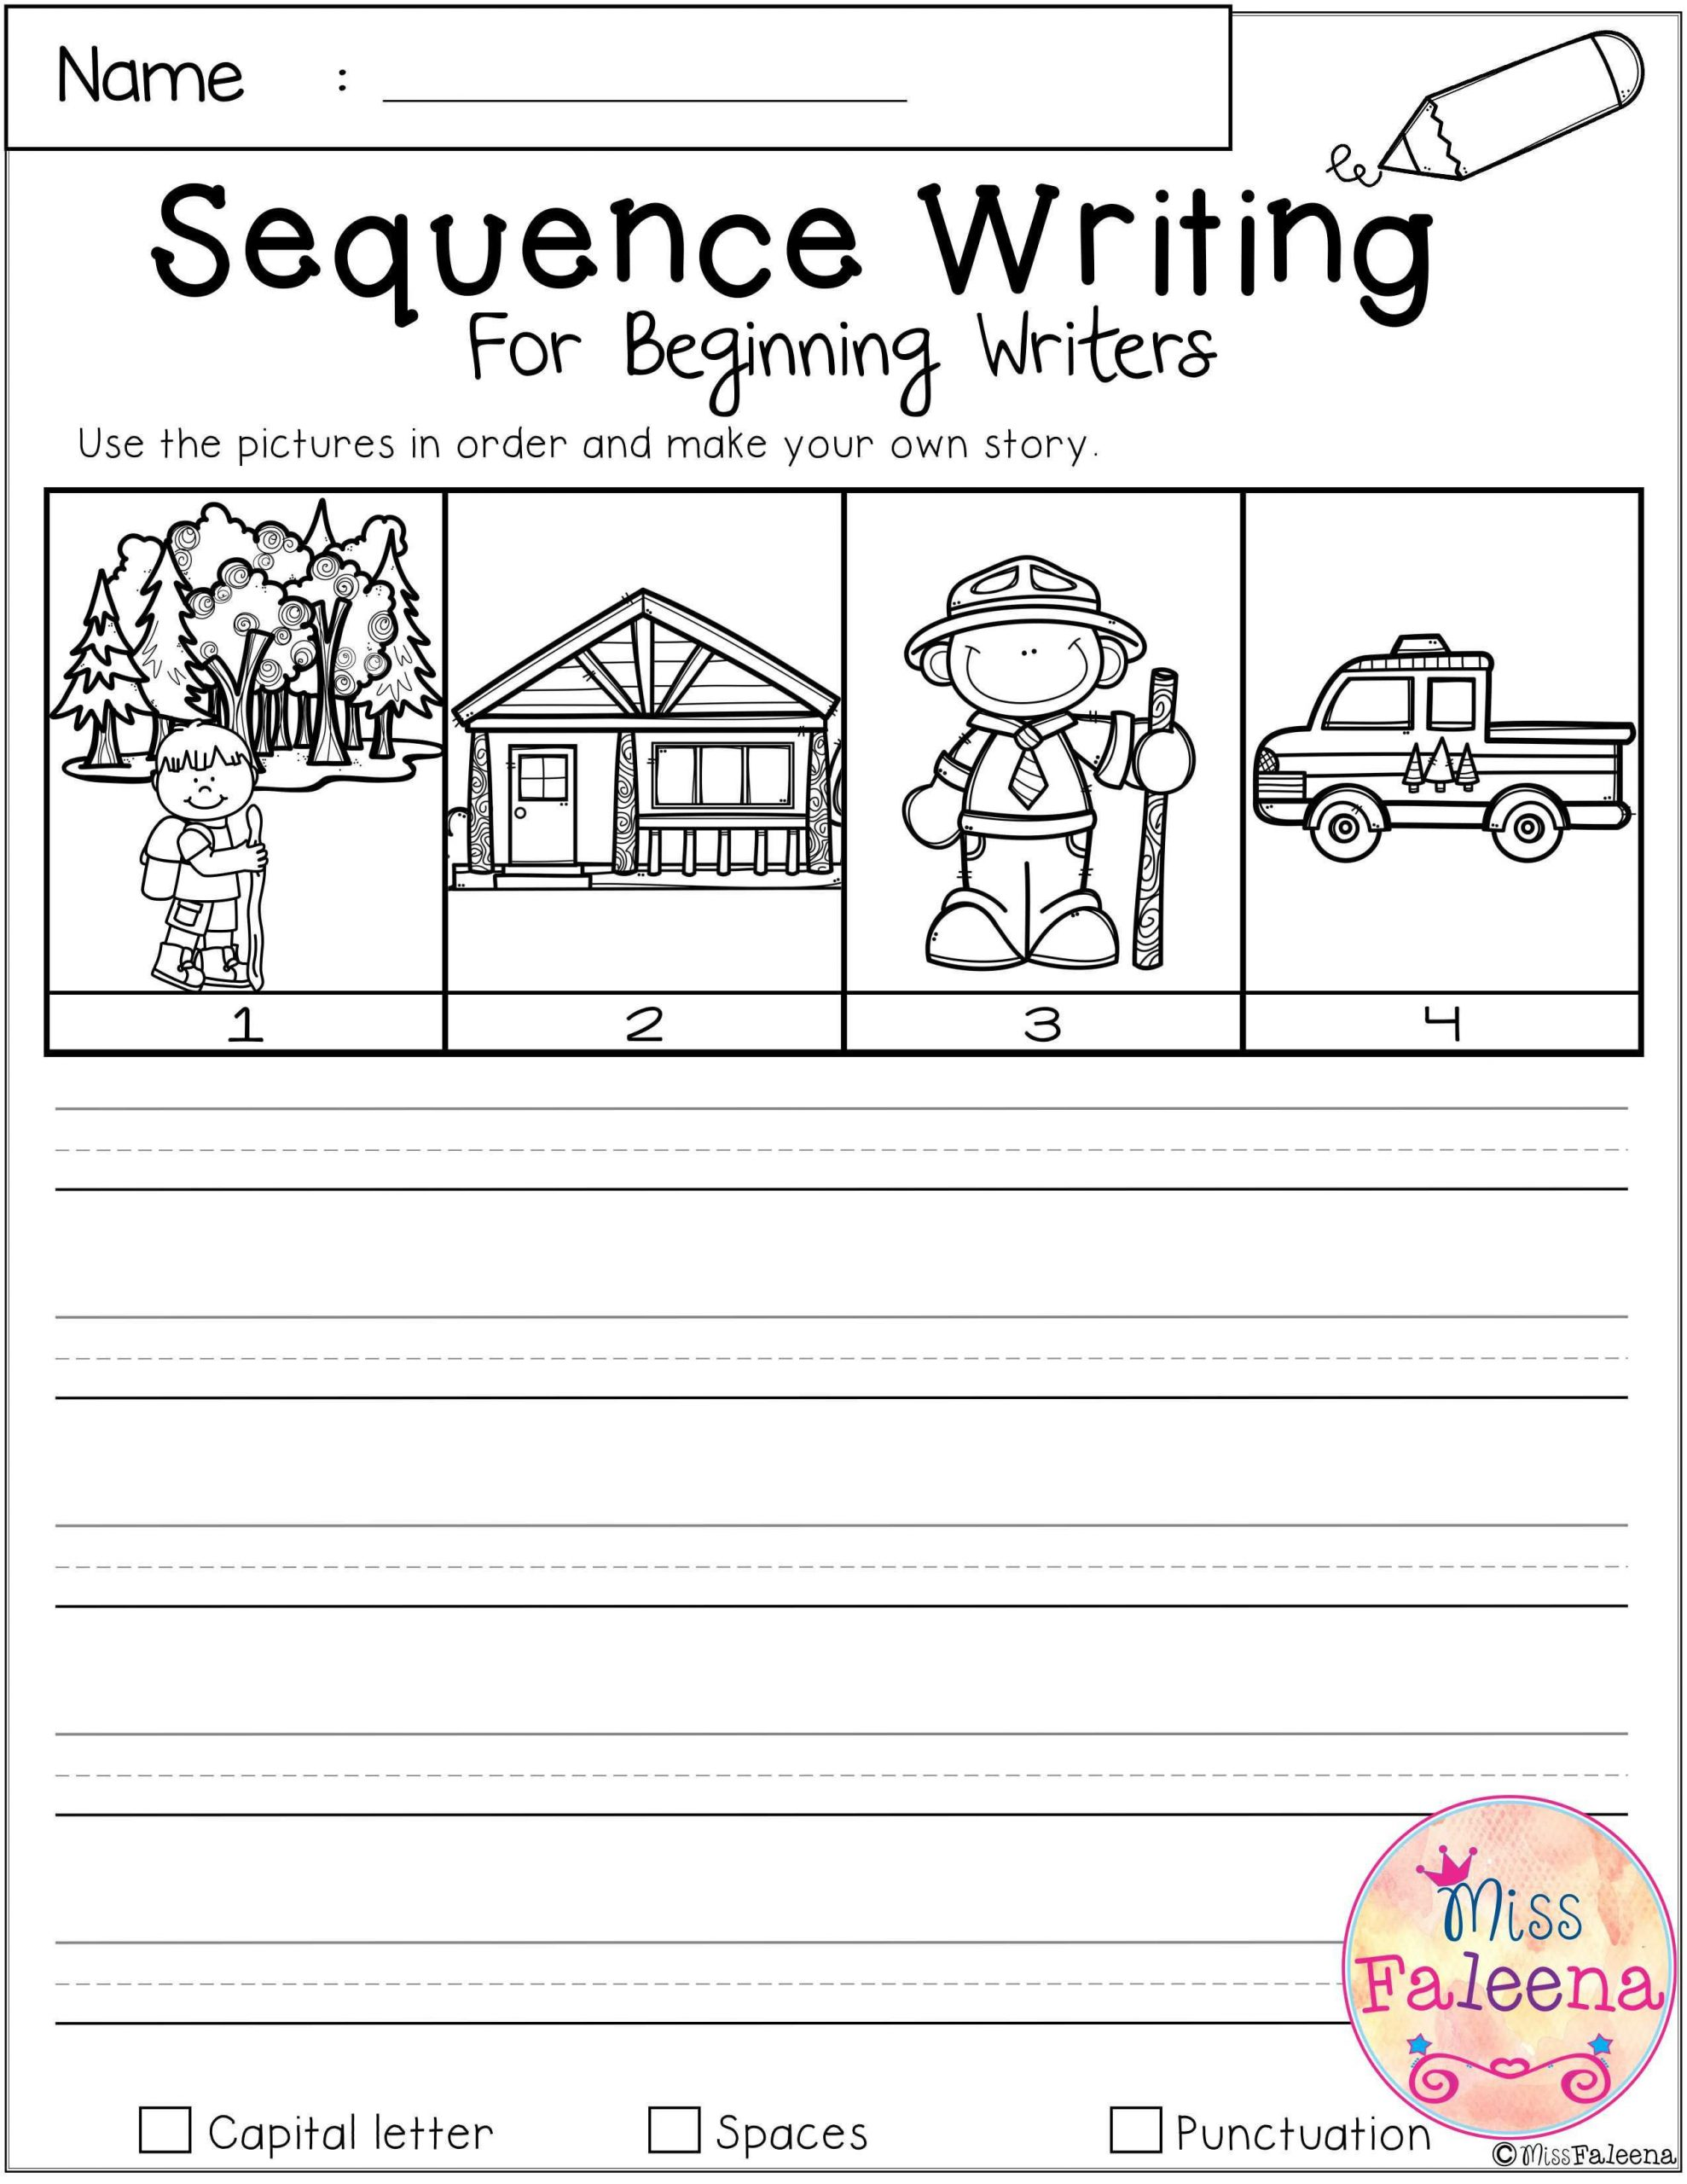 Sequencing Worksheets for 1st Grade September Sequence Writing for Beginning Writers